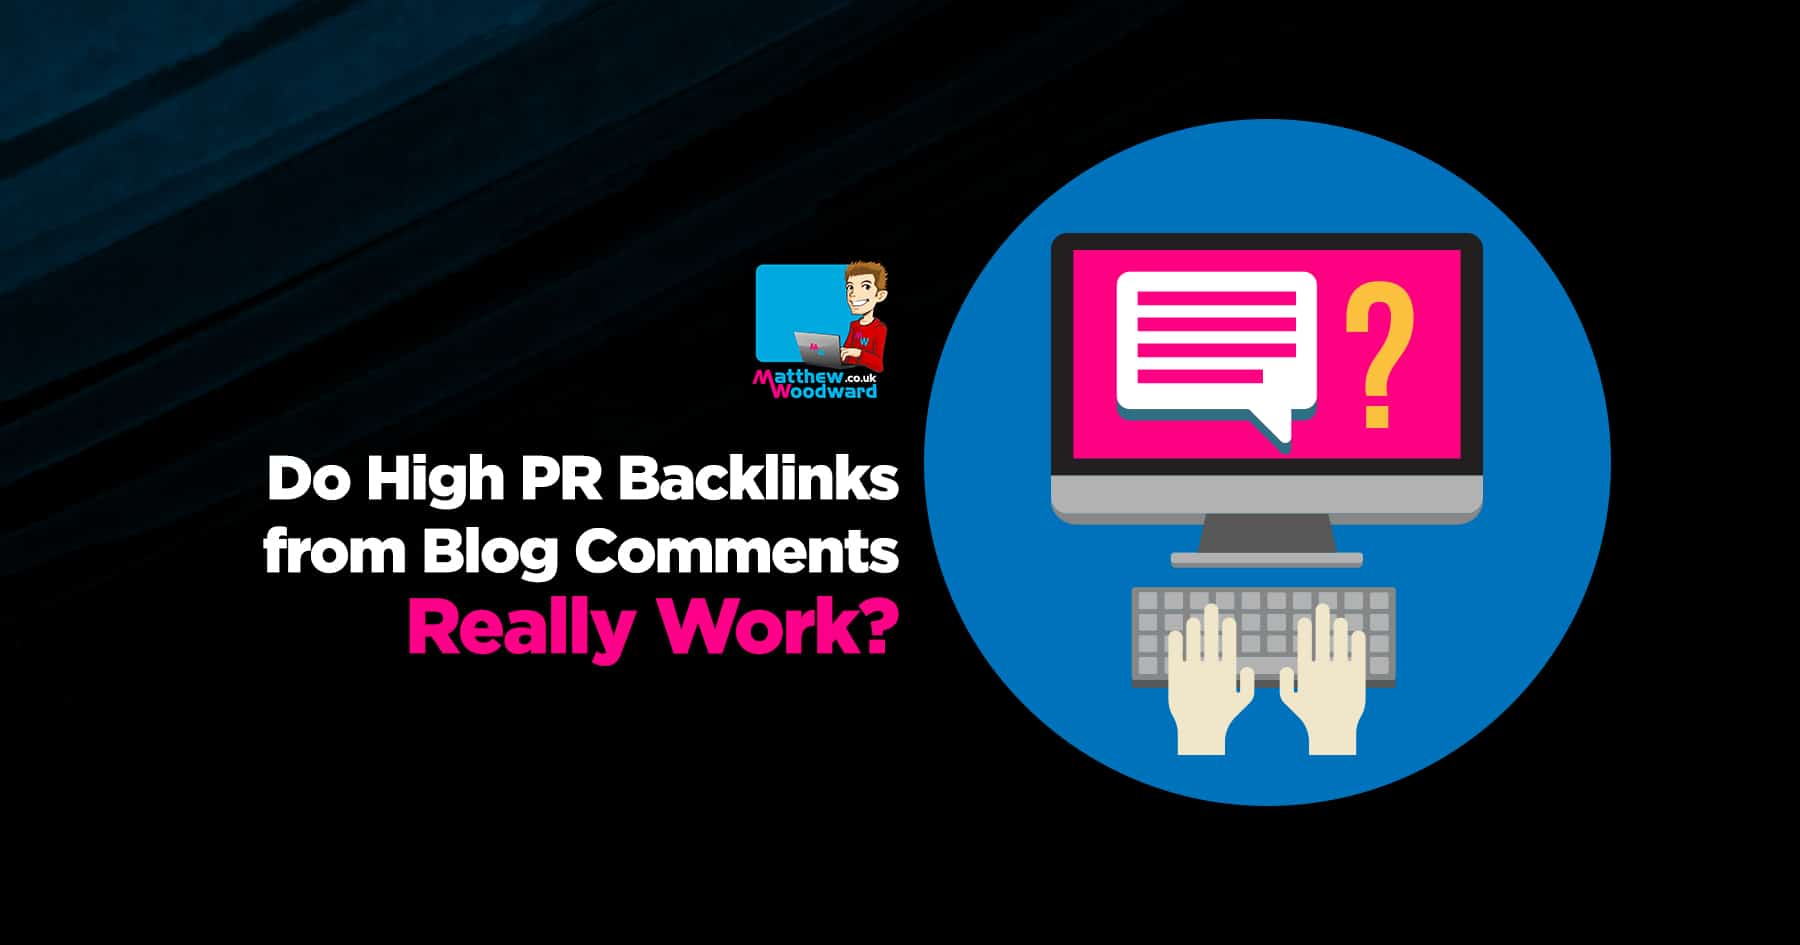 Do High PR Backlinks From Blog Comments Really Work?